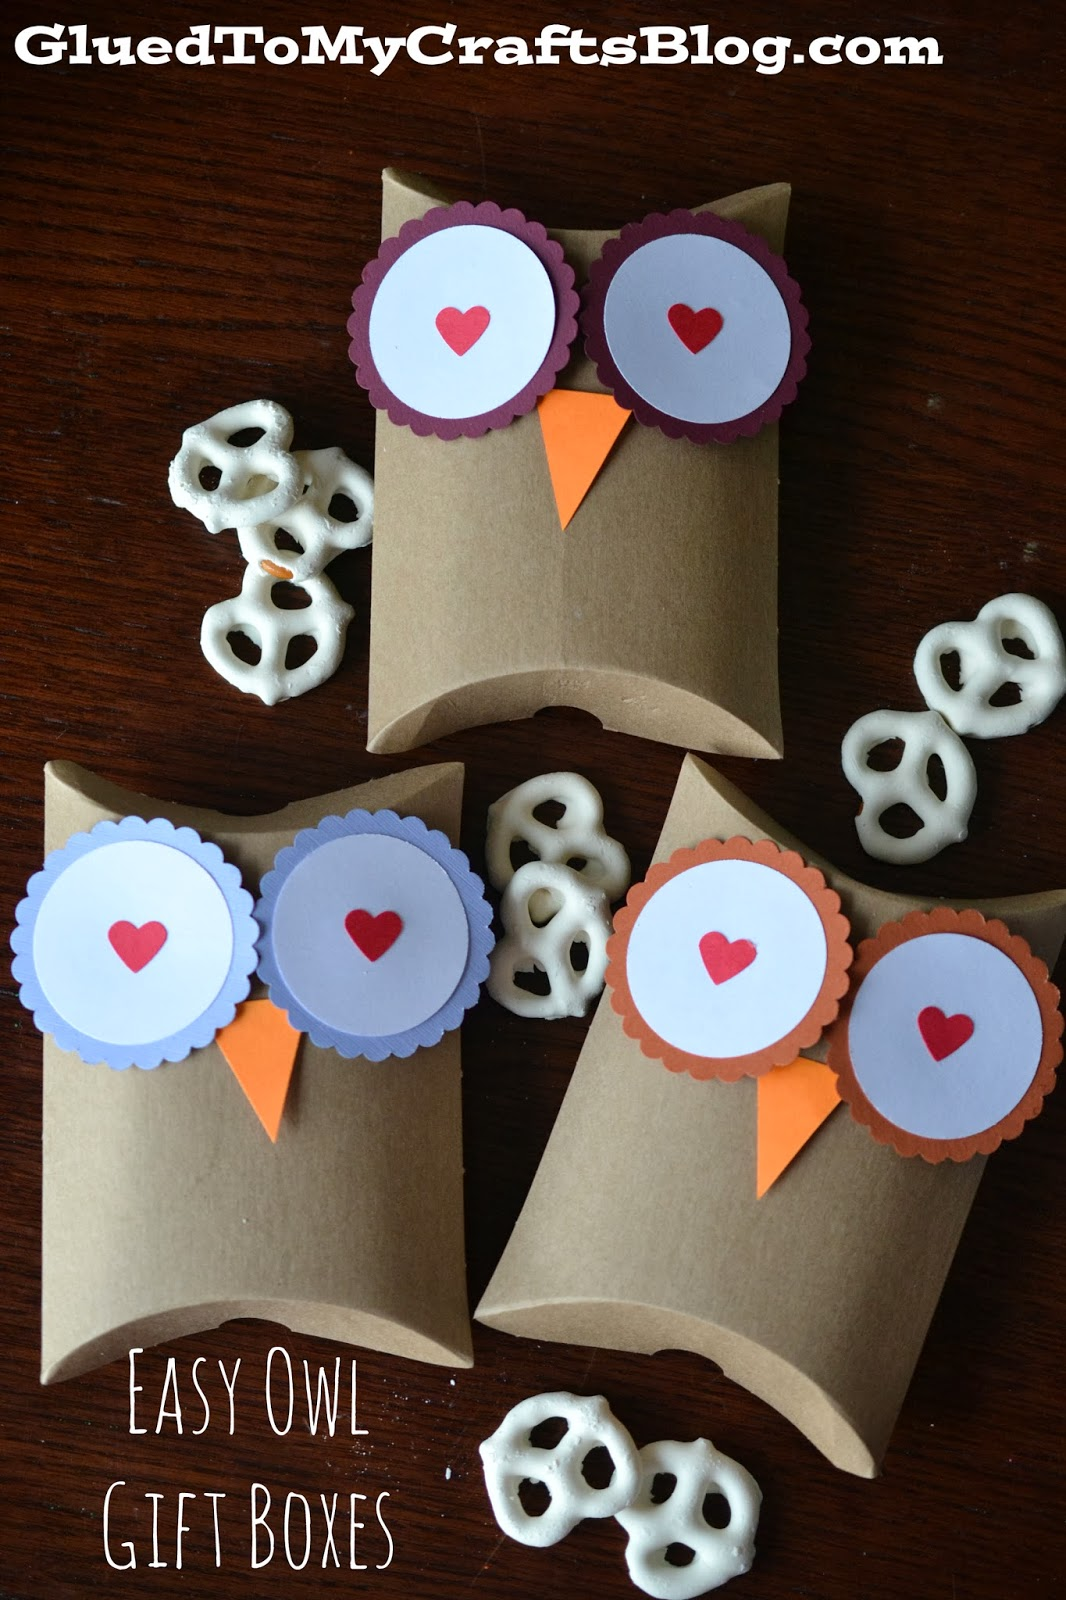 Easy Paper Owl Gift Boxes - Craft Idea For Valentine's Day